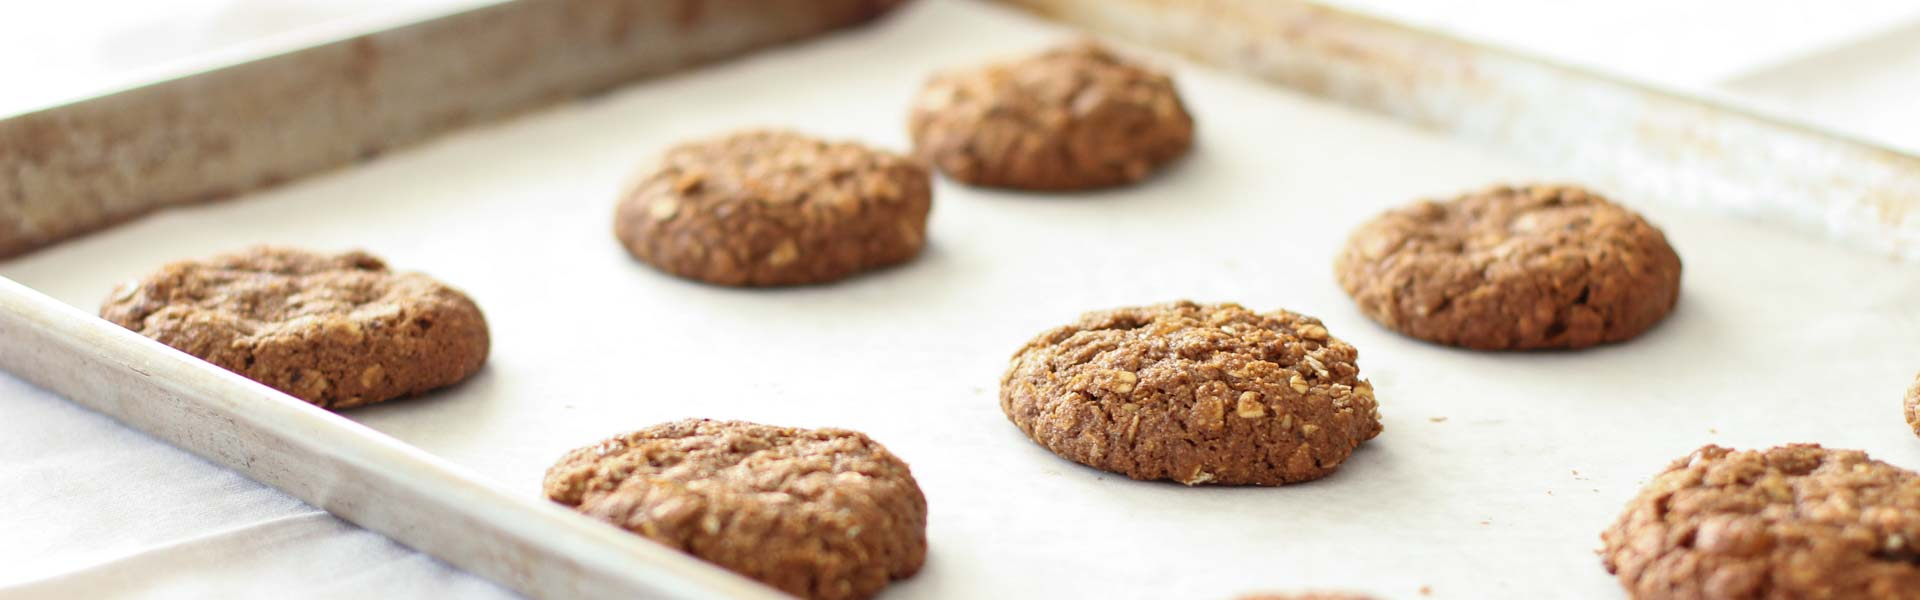 <p>Demand has grown for healthier cookies that can satisfy grab-and-go breakfast needs as well as between-meal snacks. While not necessarily a health food, the best breakfast cookies incorporate fiber and protein and have less butter and sugar than conventional cookies. Mixing in Dried Plum Puree keeps the cookies chewy and moist, and its flavor is [&hellip;]</p>